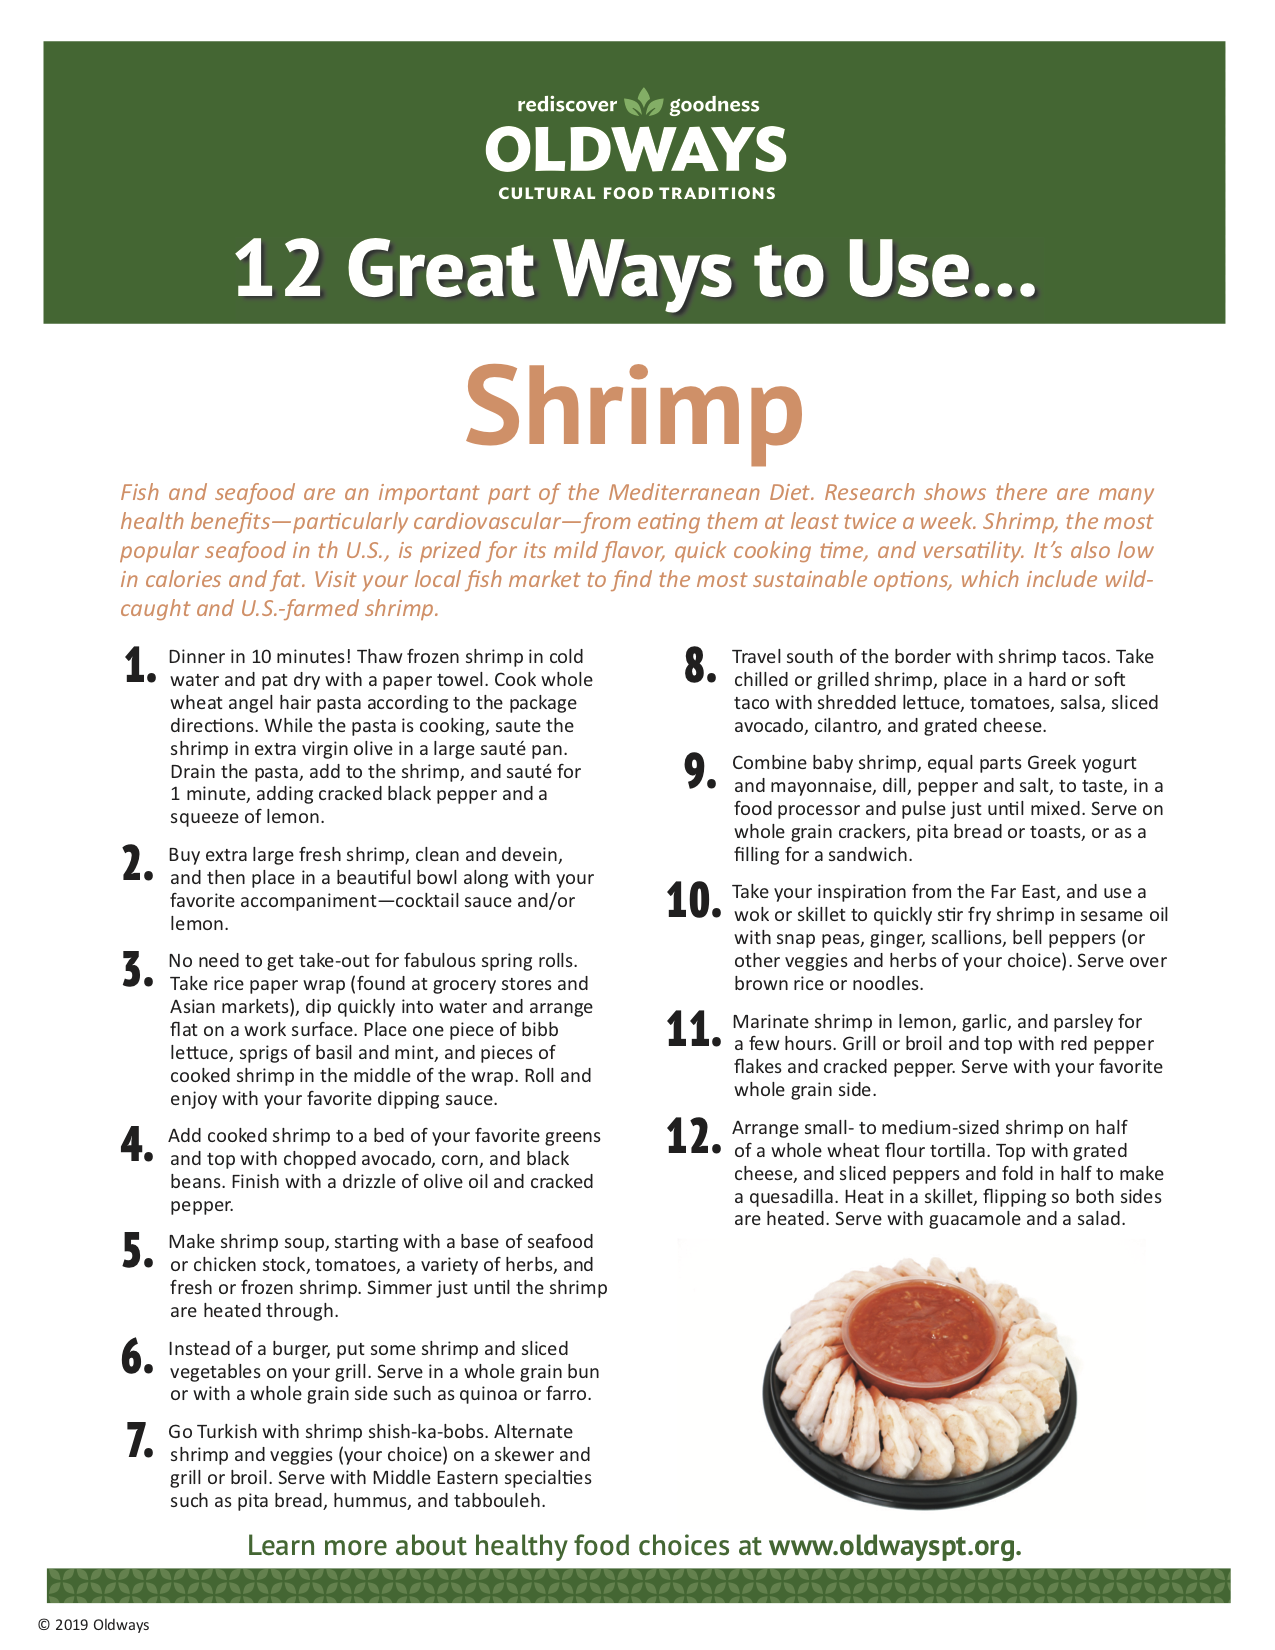 12ways_shrimp.png